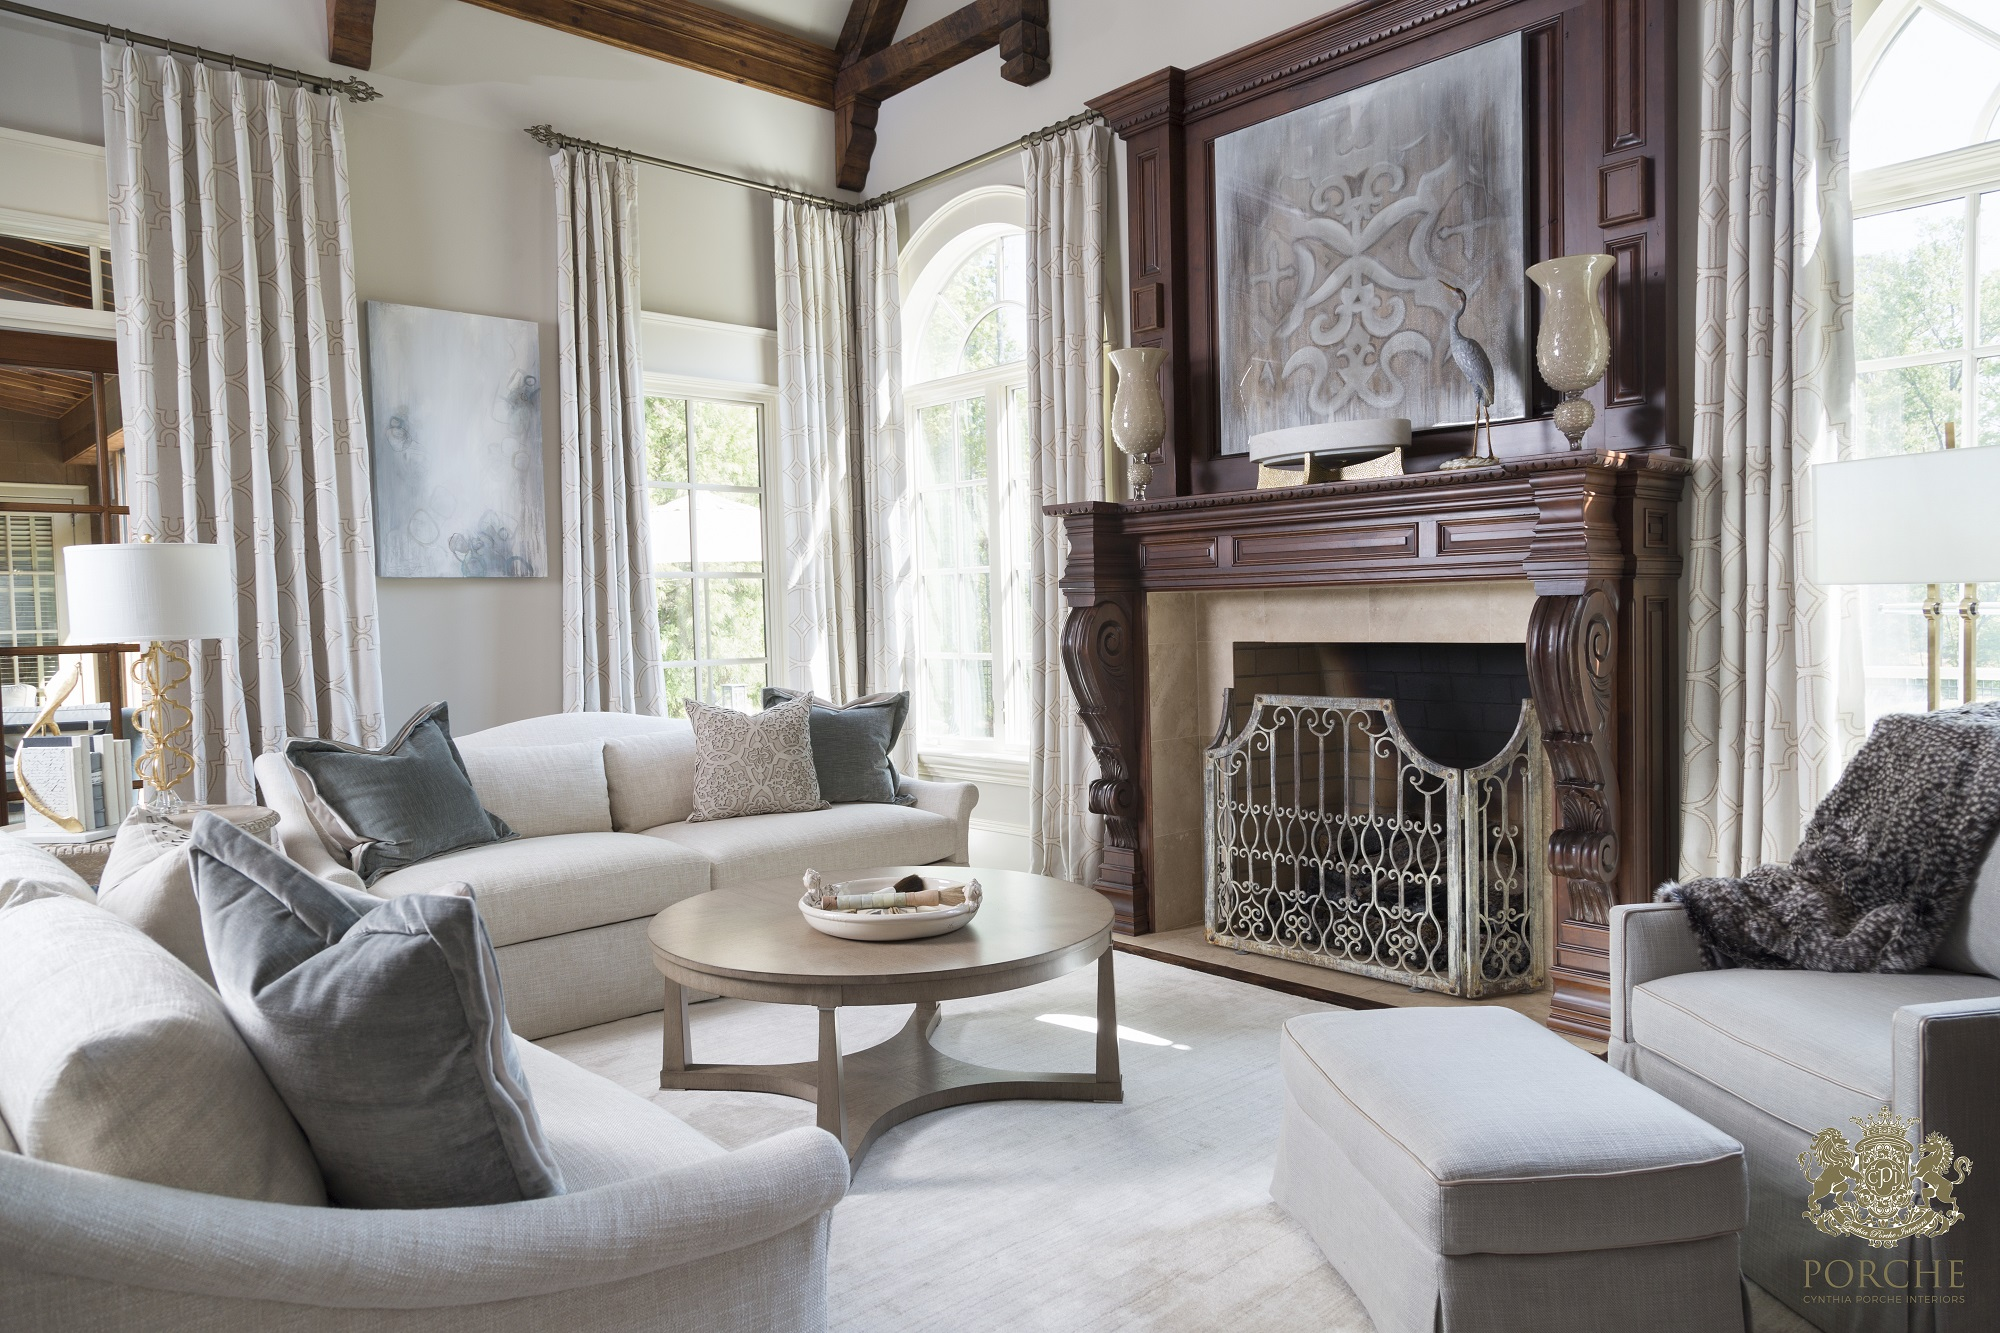 Cynthia-Porche-Living-Room-Interior-Design-Georgia